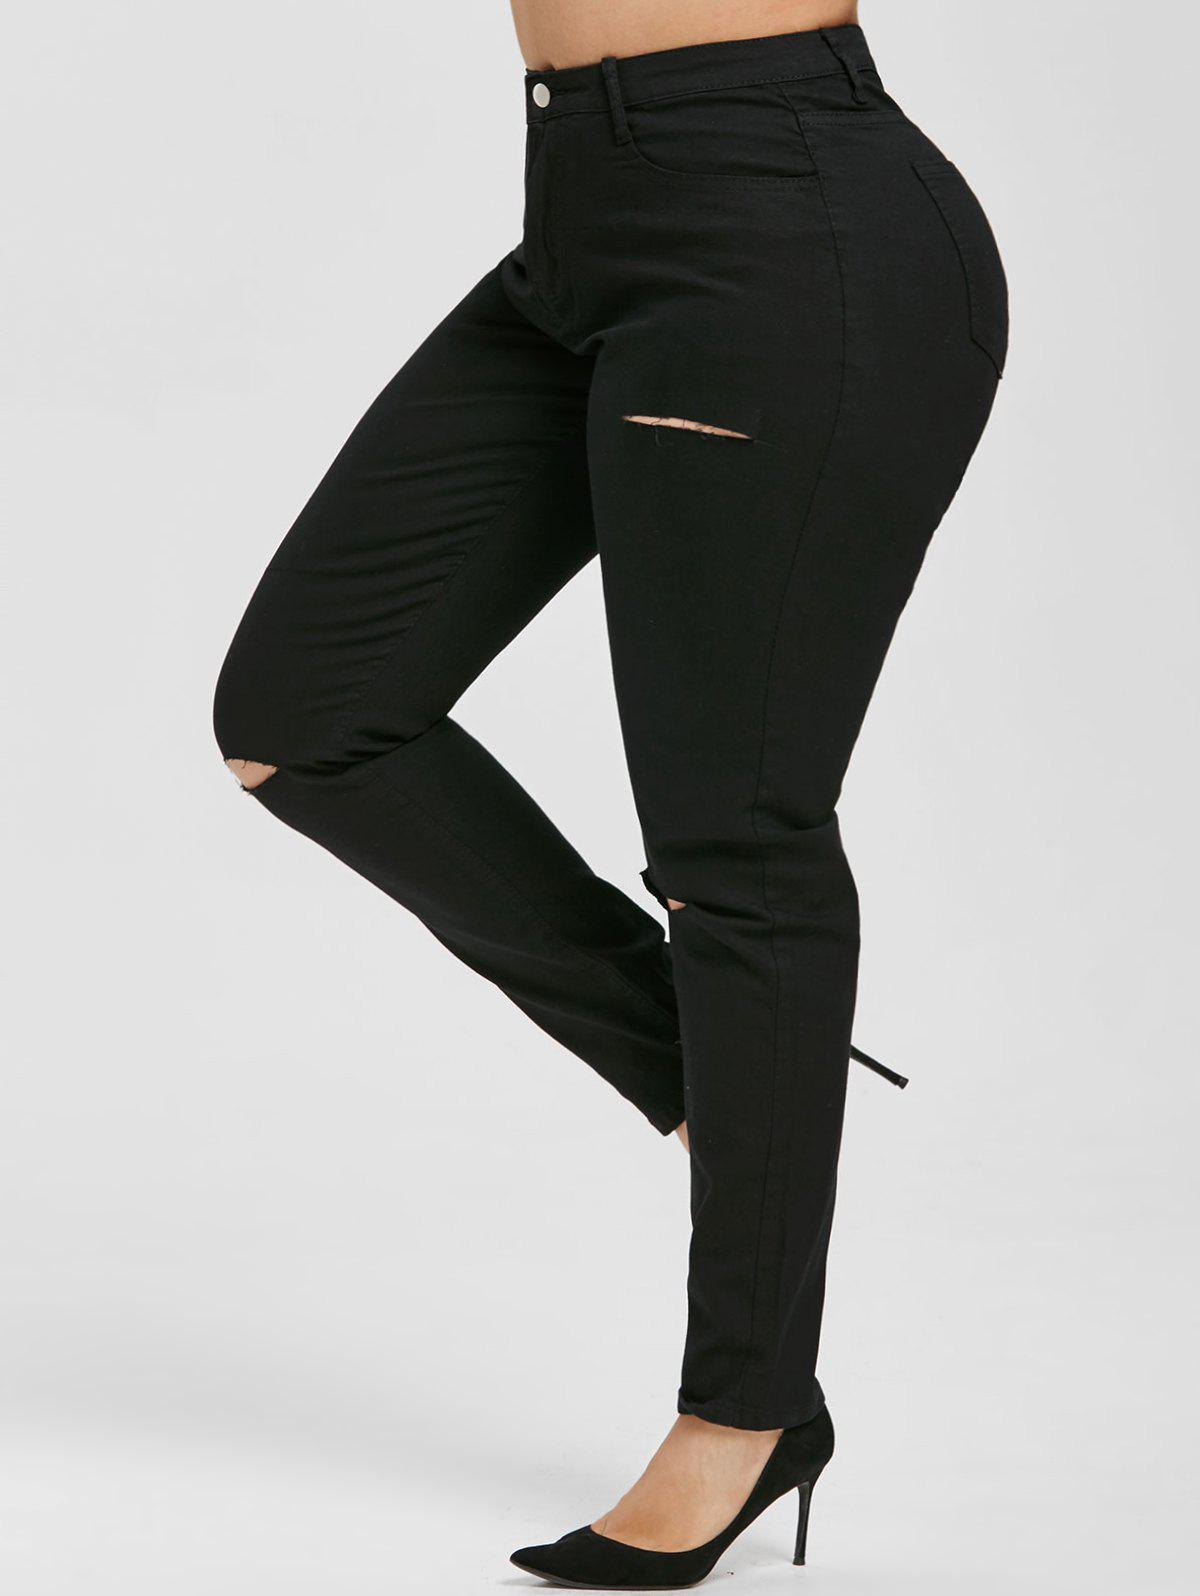 Distressed Cutout High Waisted Plus Size Skinny Jeans - BLACK 2XL